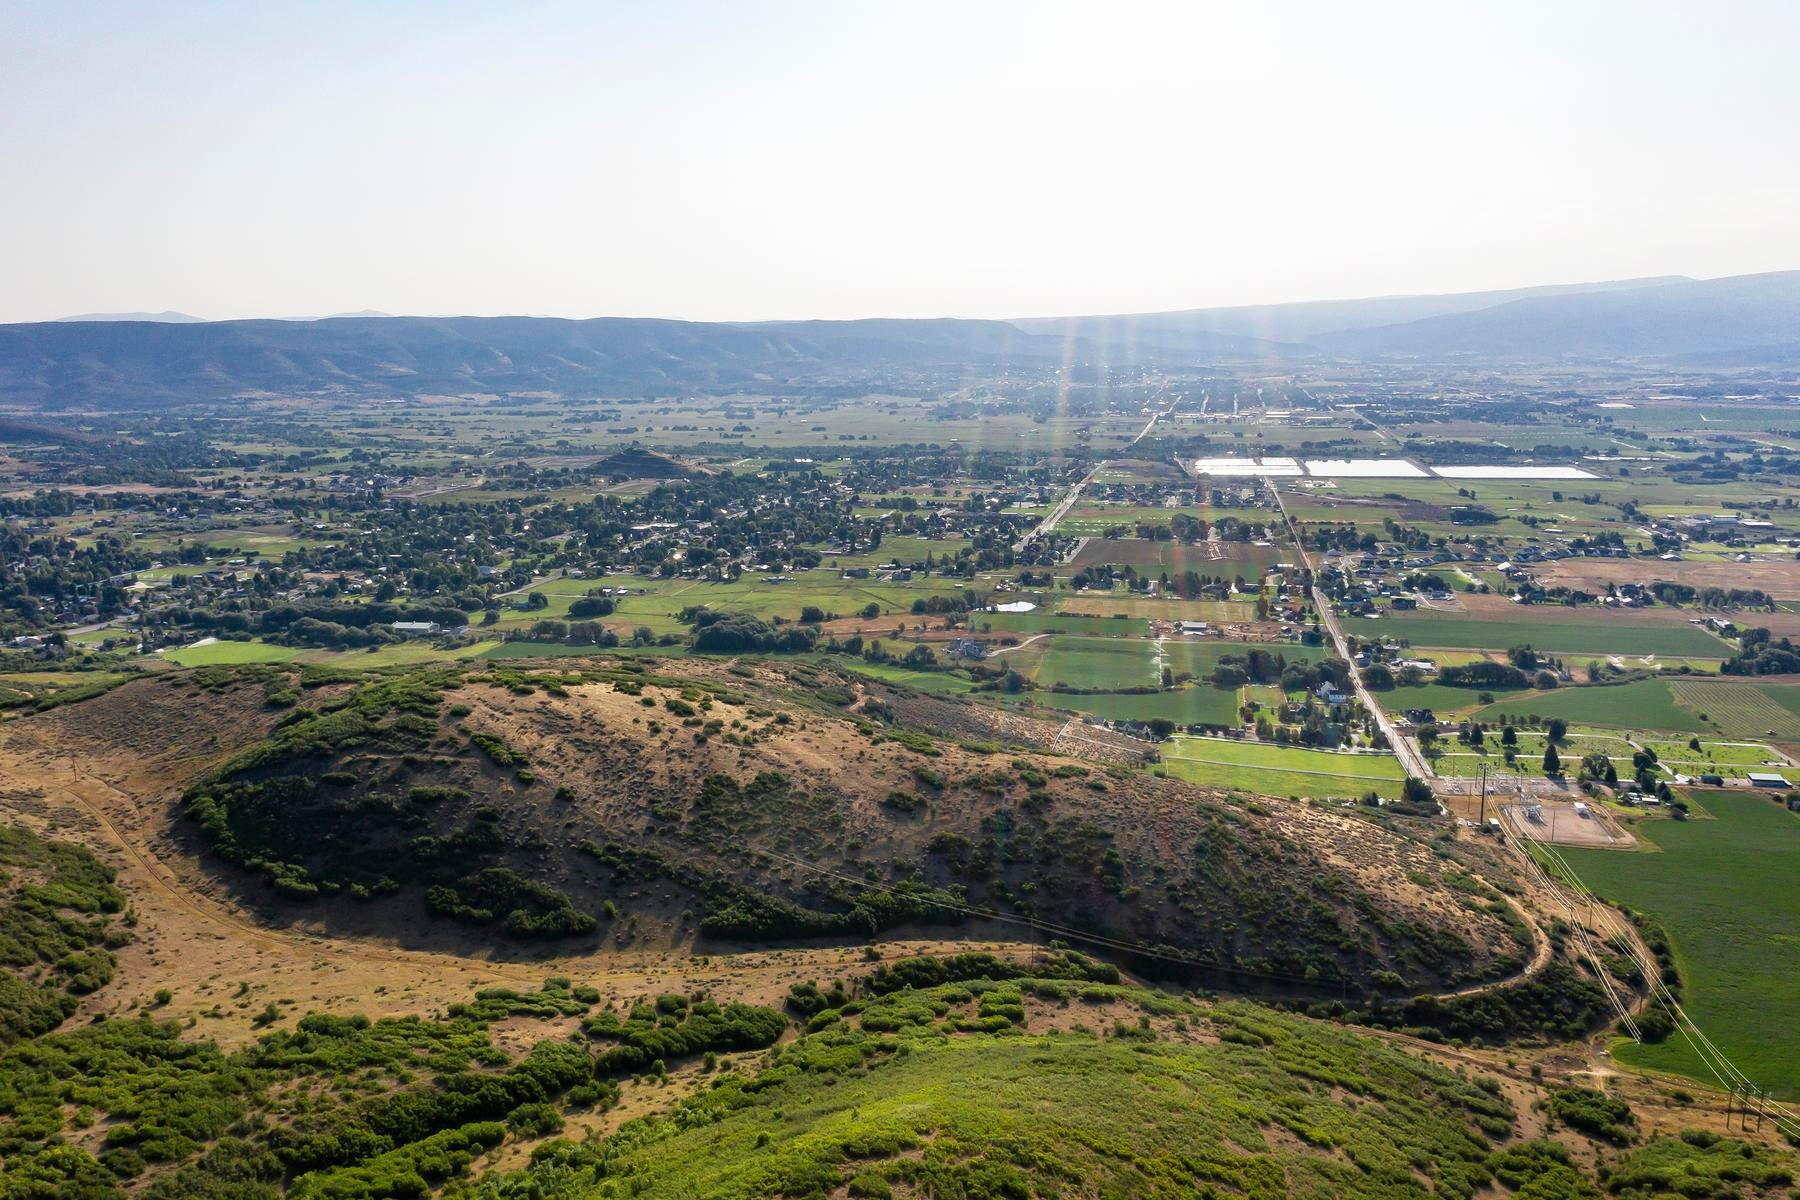 8. Land for Sale at 67 Acres in Midway with Huge Views of the Heber Valley 800 W 500 S Midway, Utah 84049 United States